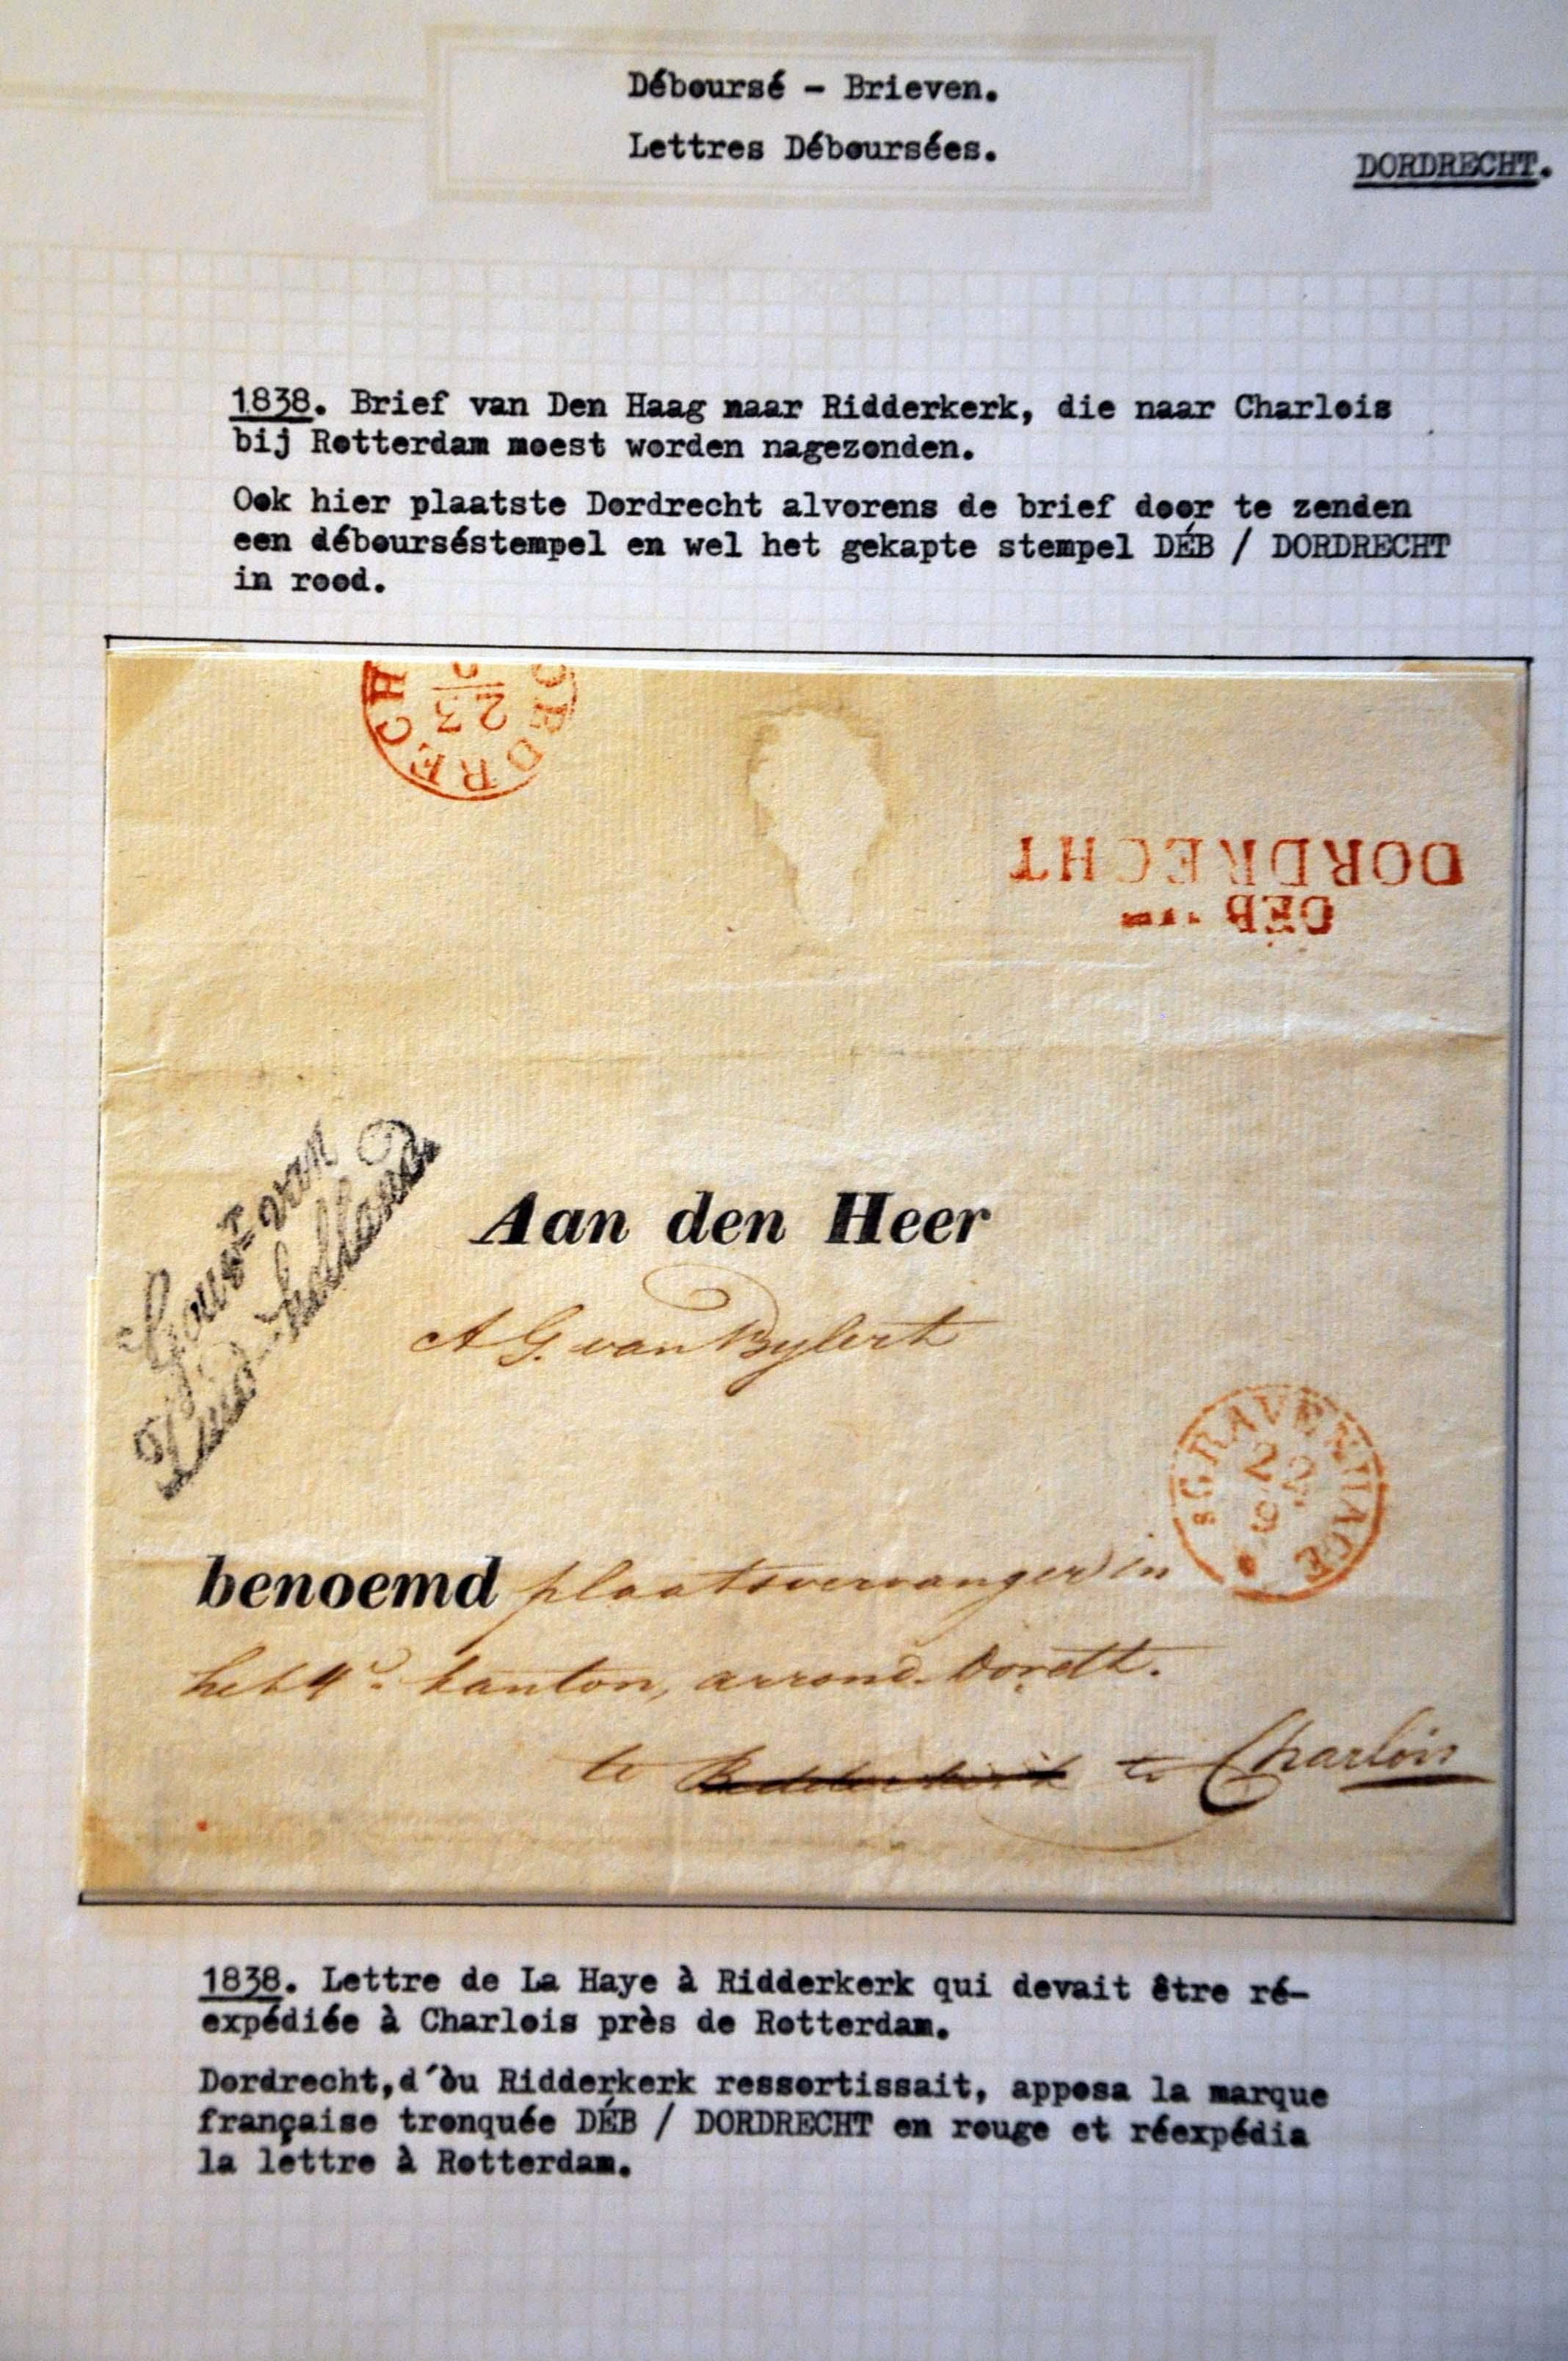 Lot 1641 - Netherlands and former colonies Netherlands -  Corinphila Veilingen Auction 250-253 - Day 2 - Coins, medals, Netherlands and former colonies